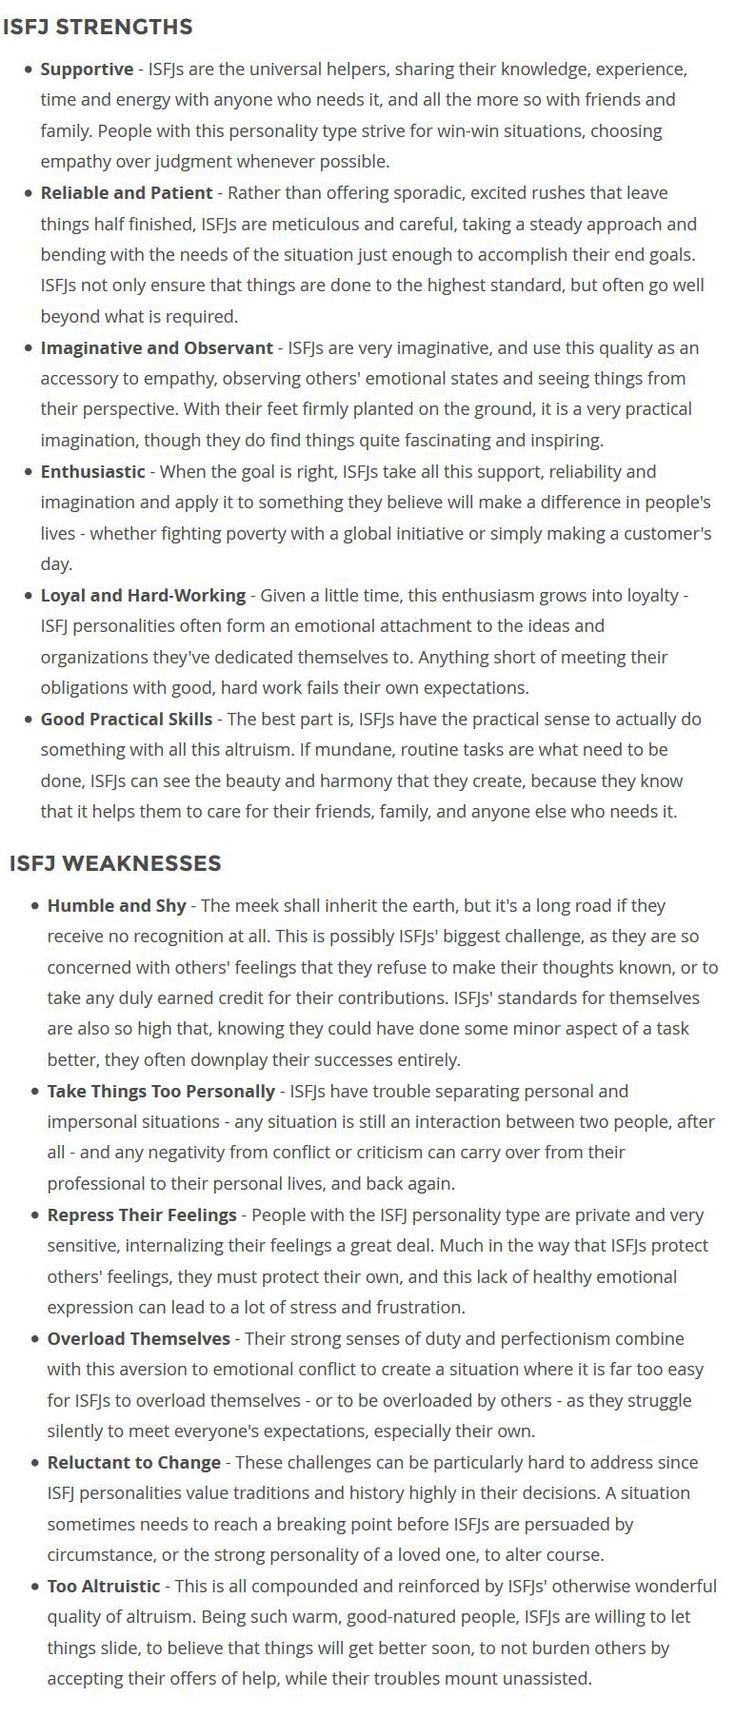 Strengths  Weaknesses  Isfj    Isfj Strength And Mbti